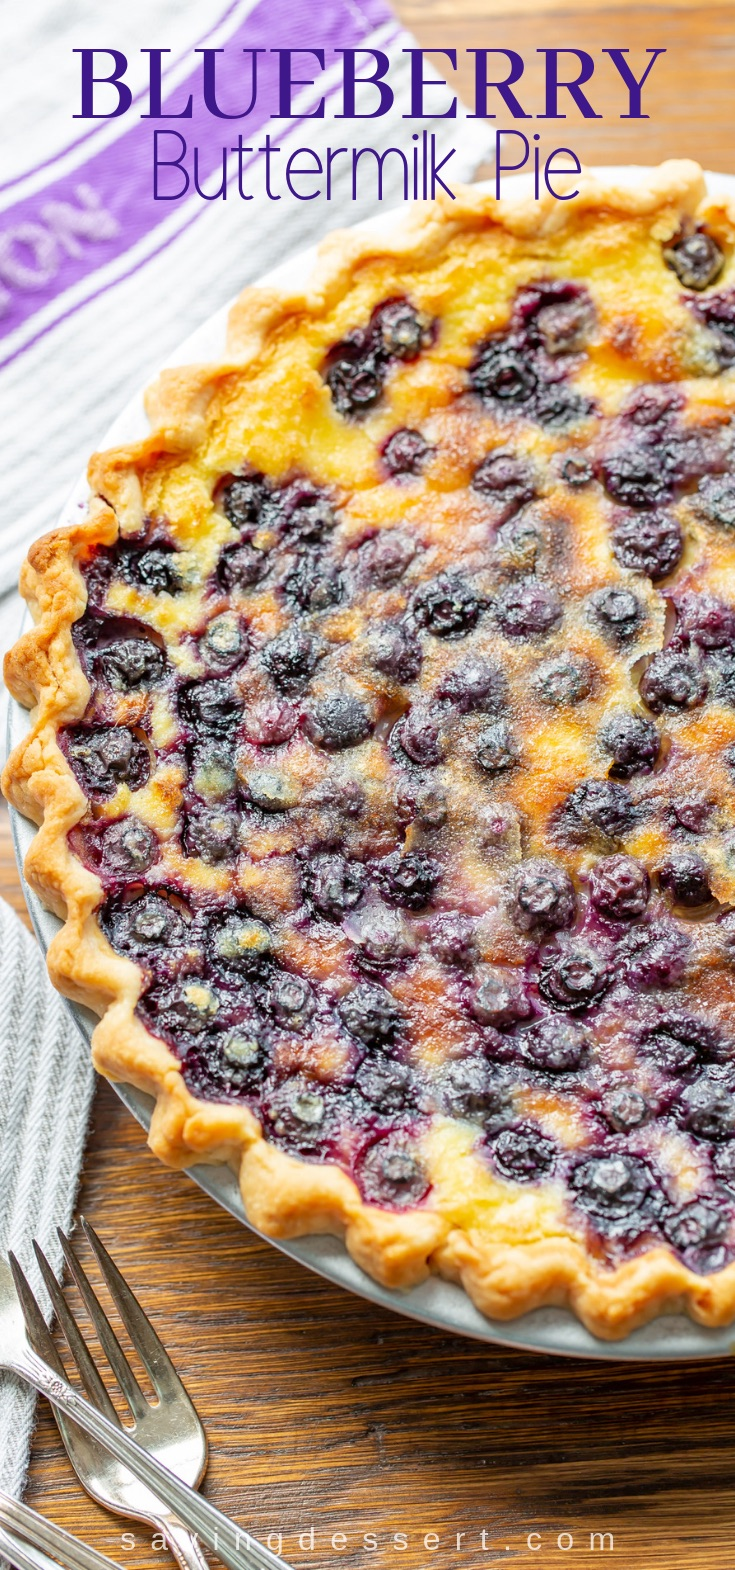 Blueberry Buttermilk Pie Recipe Buttermilk Pie Blueberry Recipes Desserts